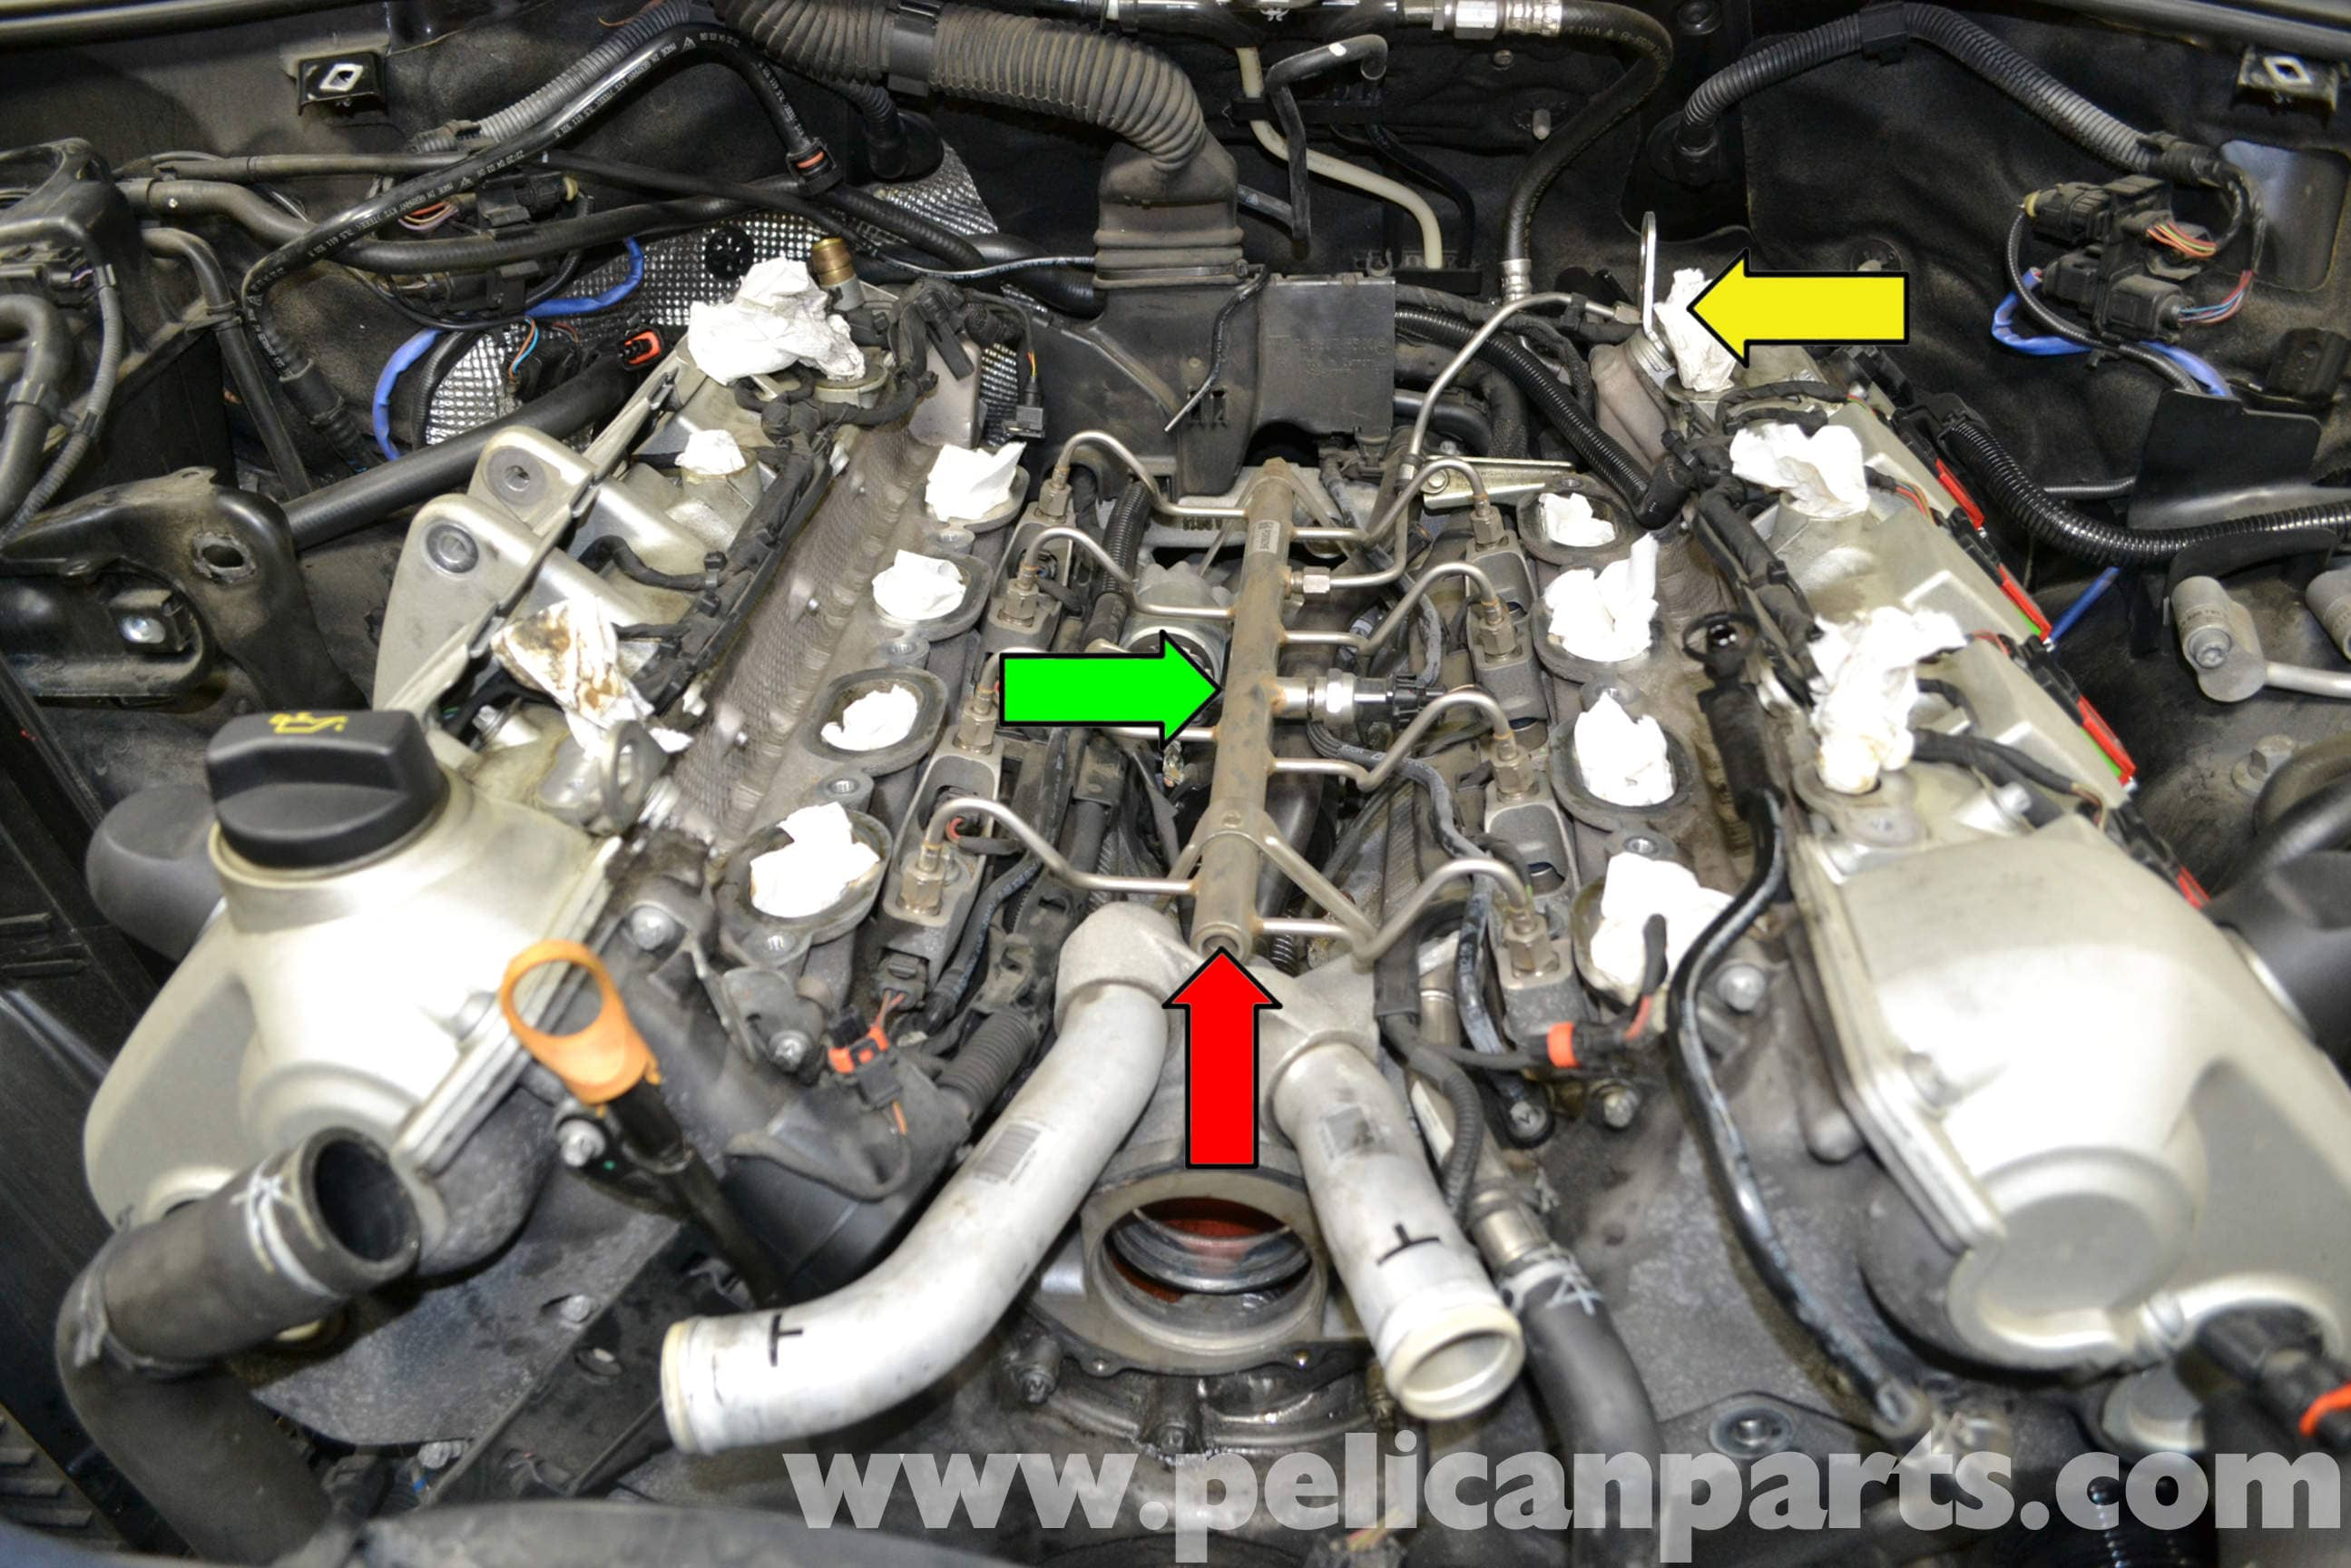 Porsche 3 2 Engine Diagram Wiring Will Be A Thing 997 Cayenne High Pressure Fuel Sensor Replacement 955 911 Number Location